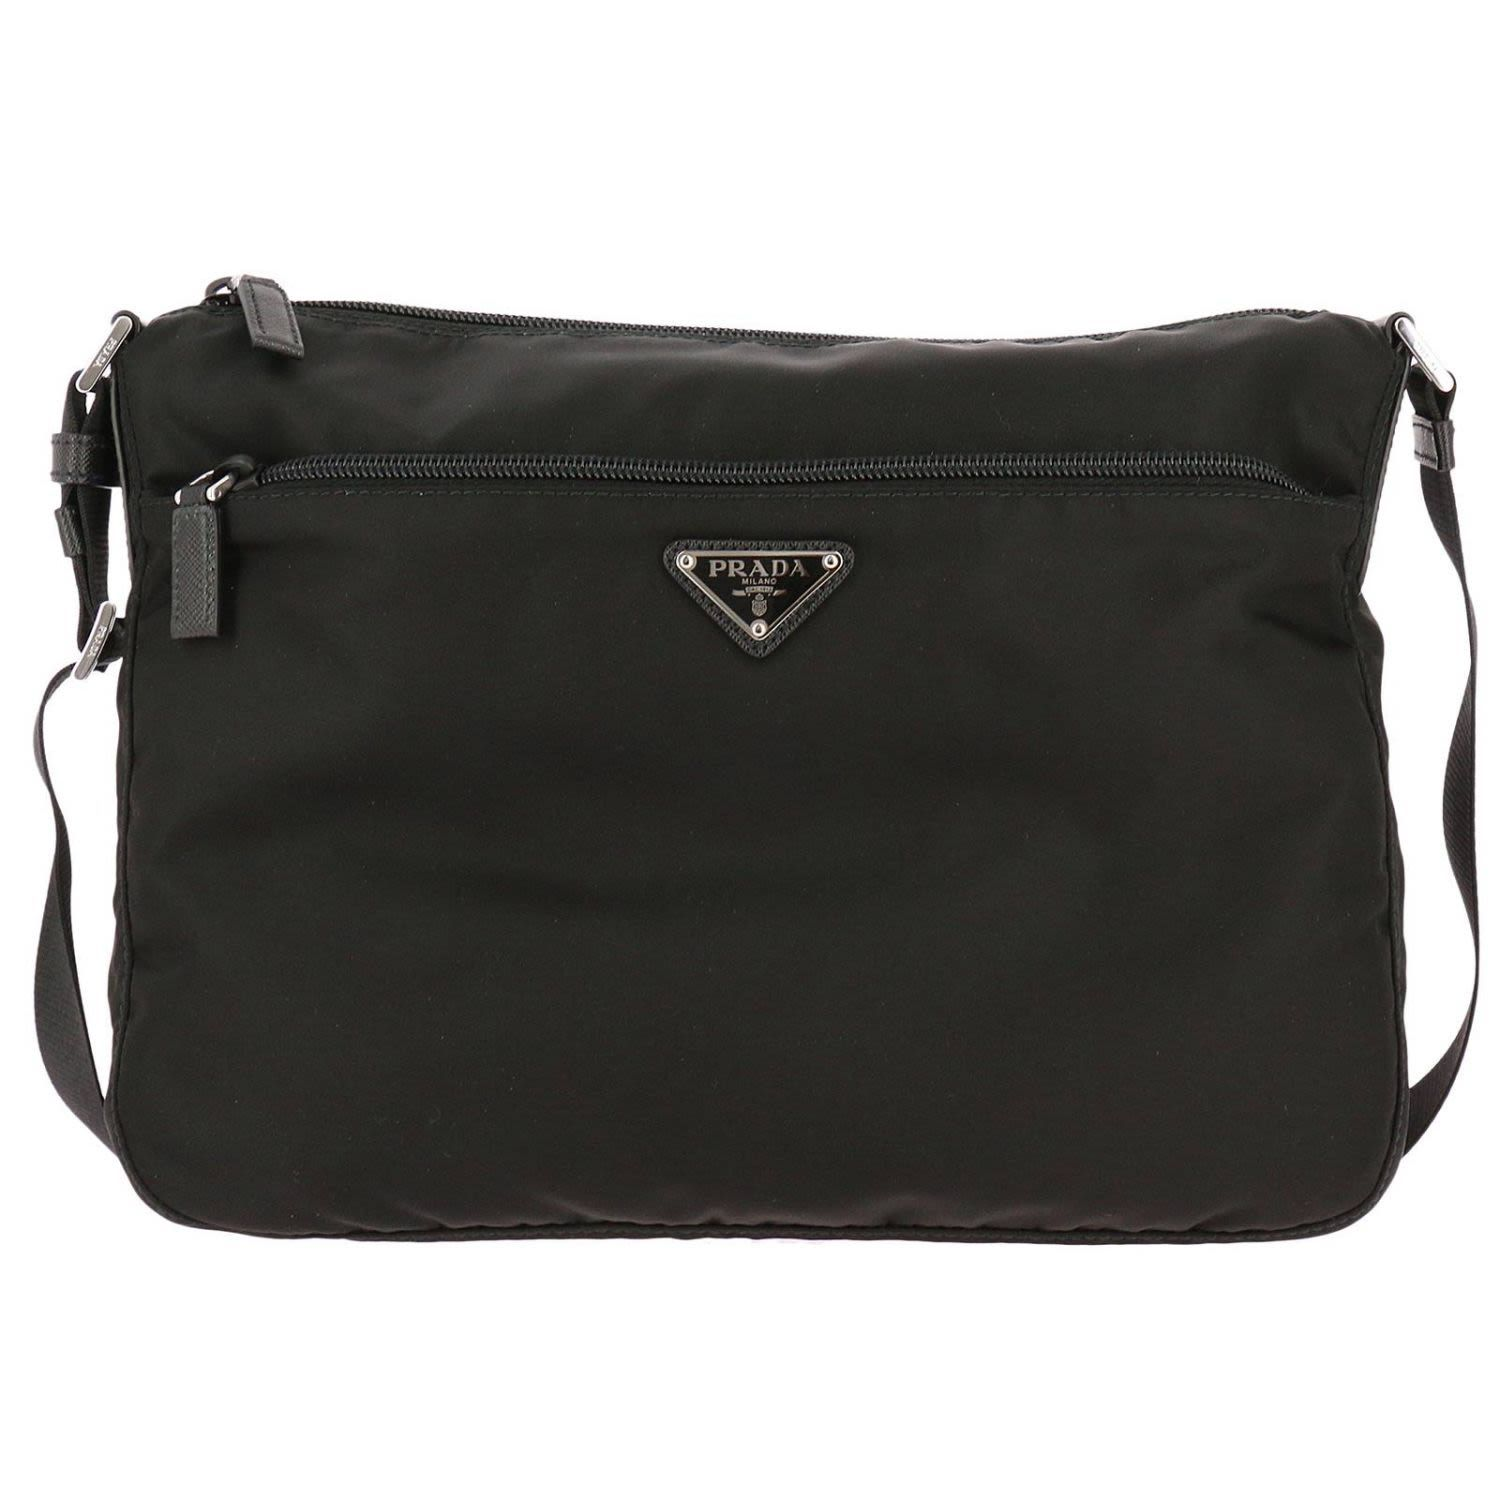 d4572eac226a Tucano Lampo Shoulder Bag for Microsoft Surface Pro 3 and Pro 4 ...